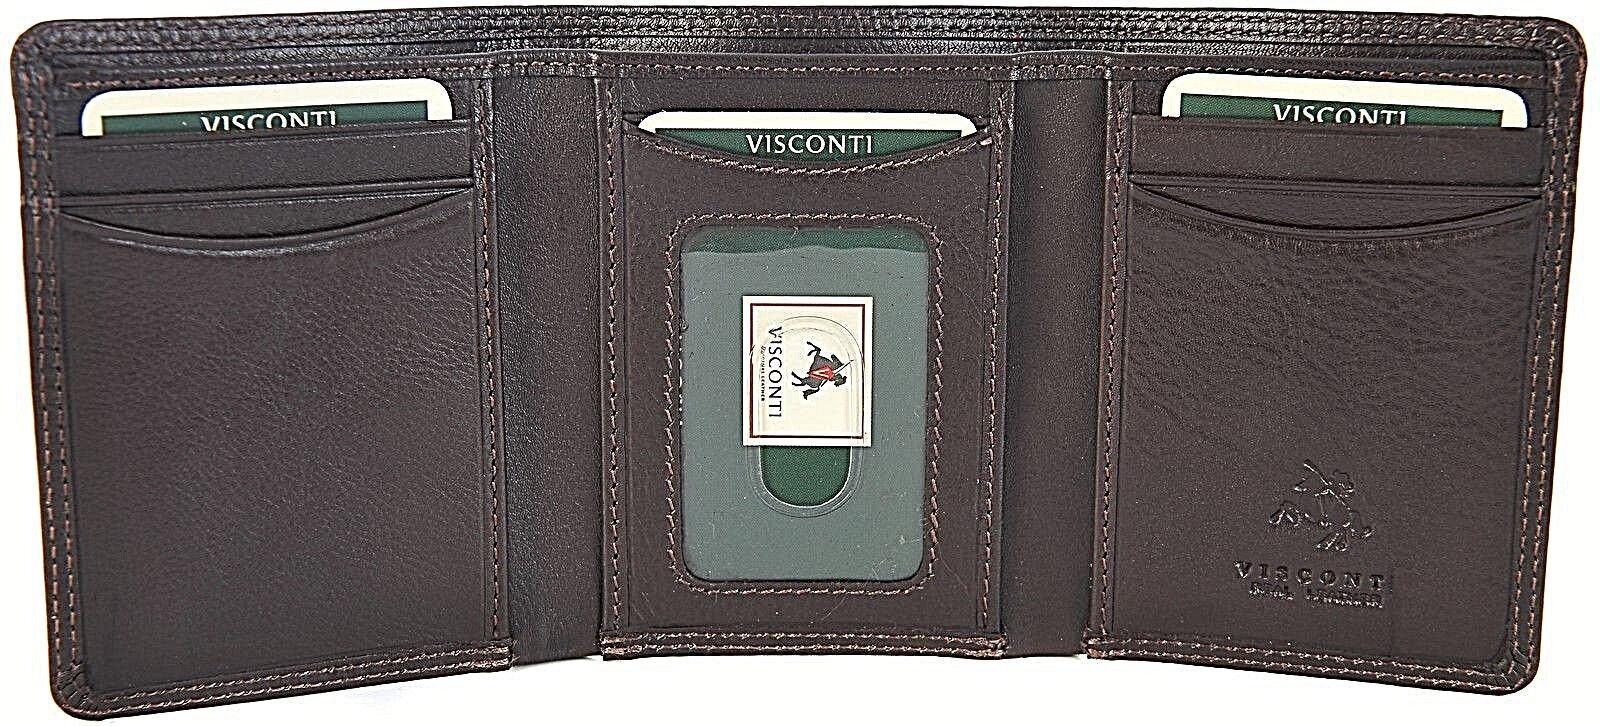 1287992913be Visconti Luxury Soft Leather Dark Brown Trifold Mens Wallet Ht-18 ...